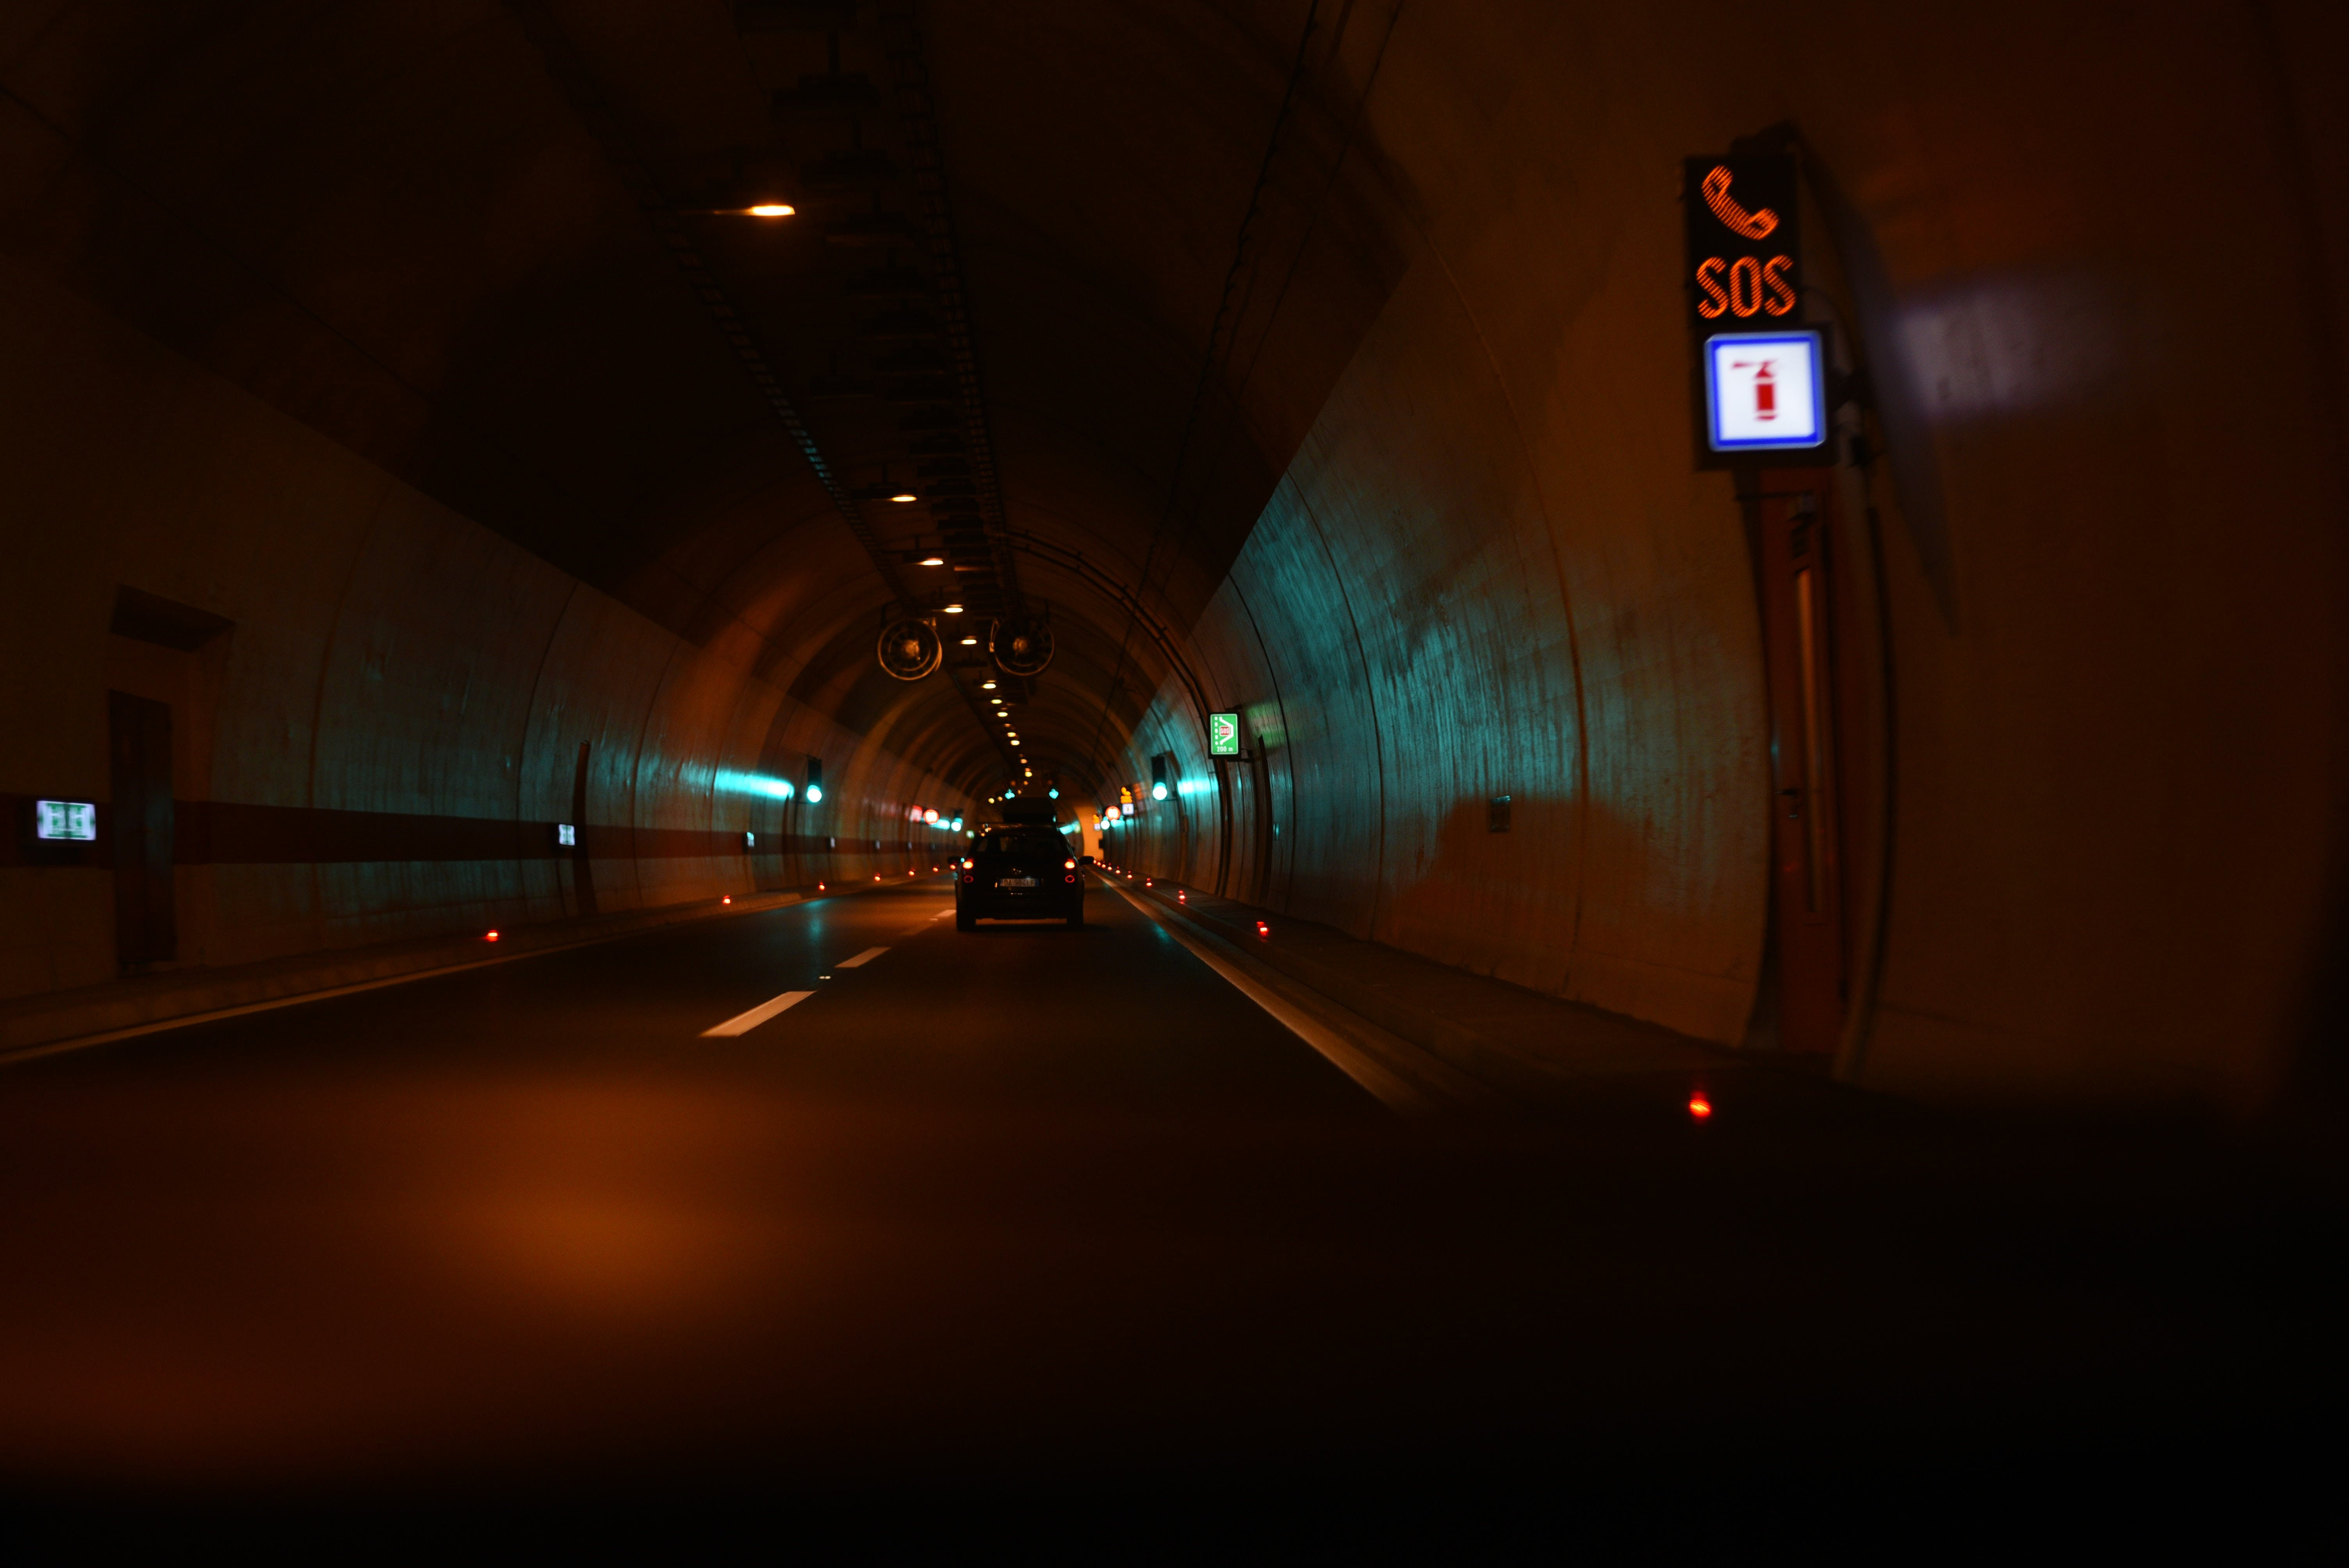 Vehicles on Tunnel Road at Nighttime